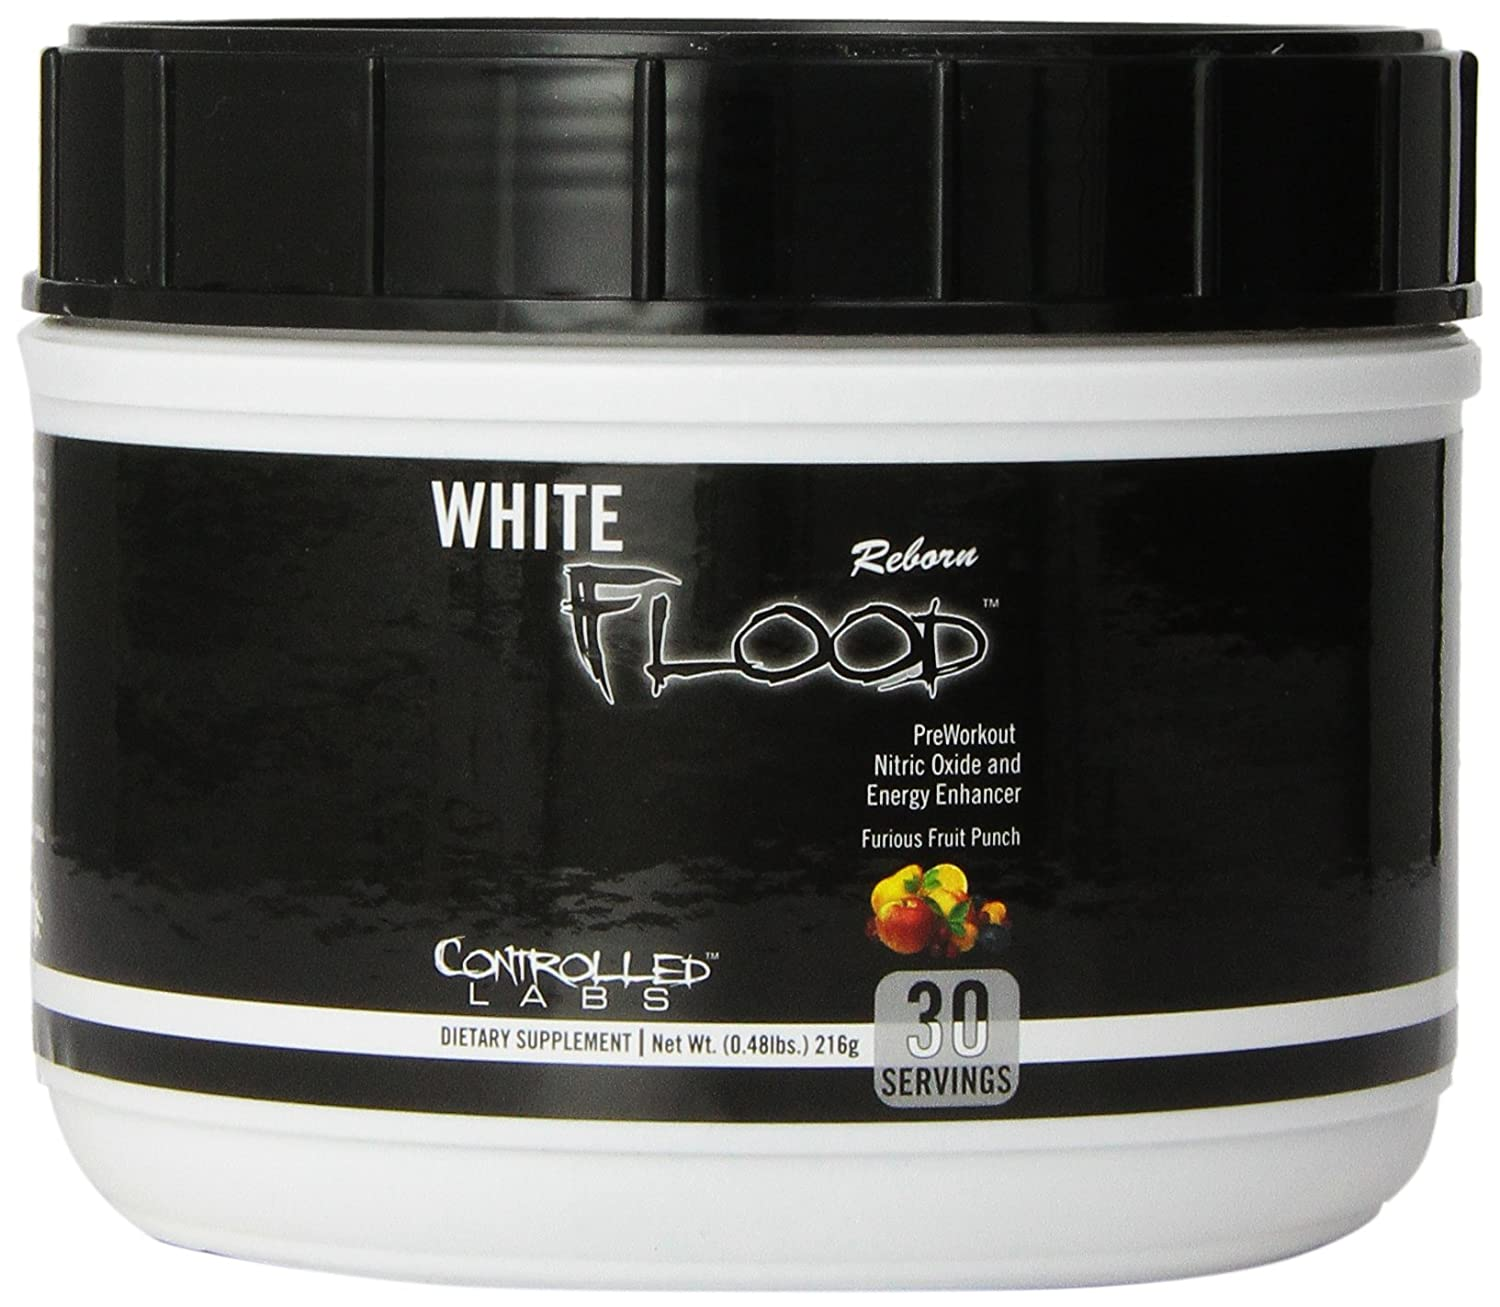 Controlled Labs White Flood Pre Workout